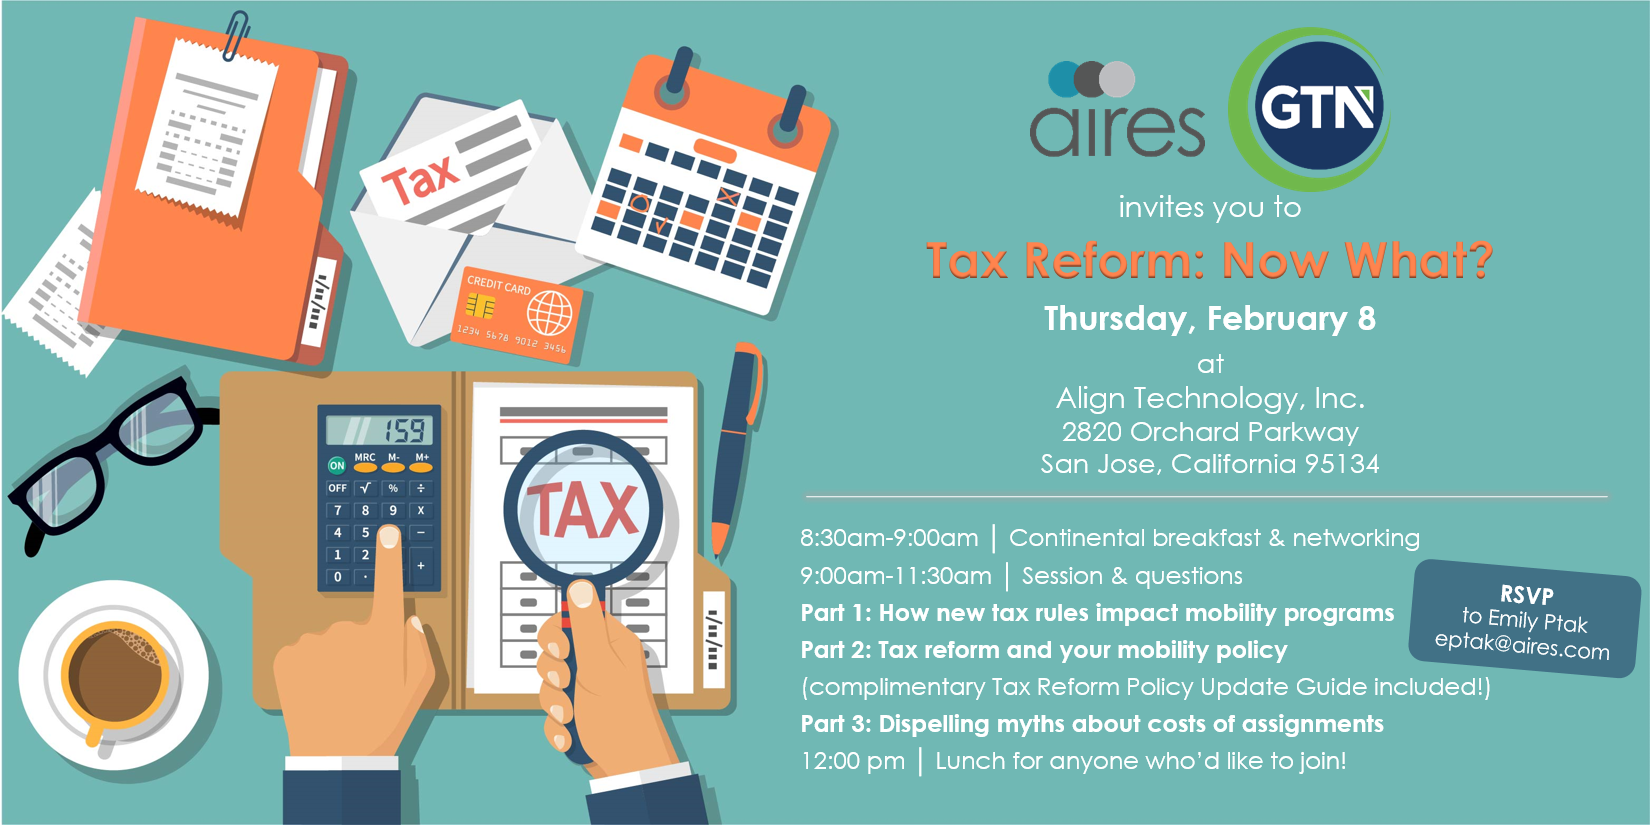 tax reform event invite.png